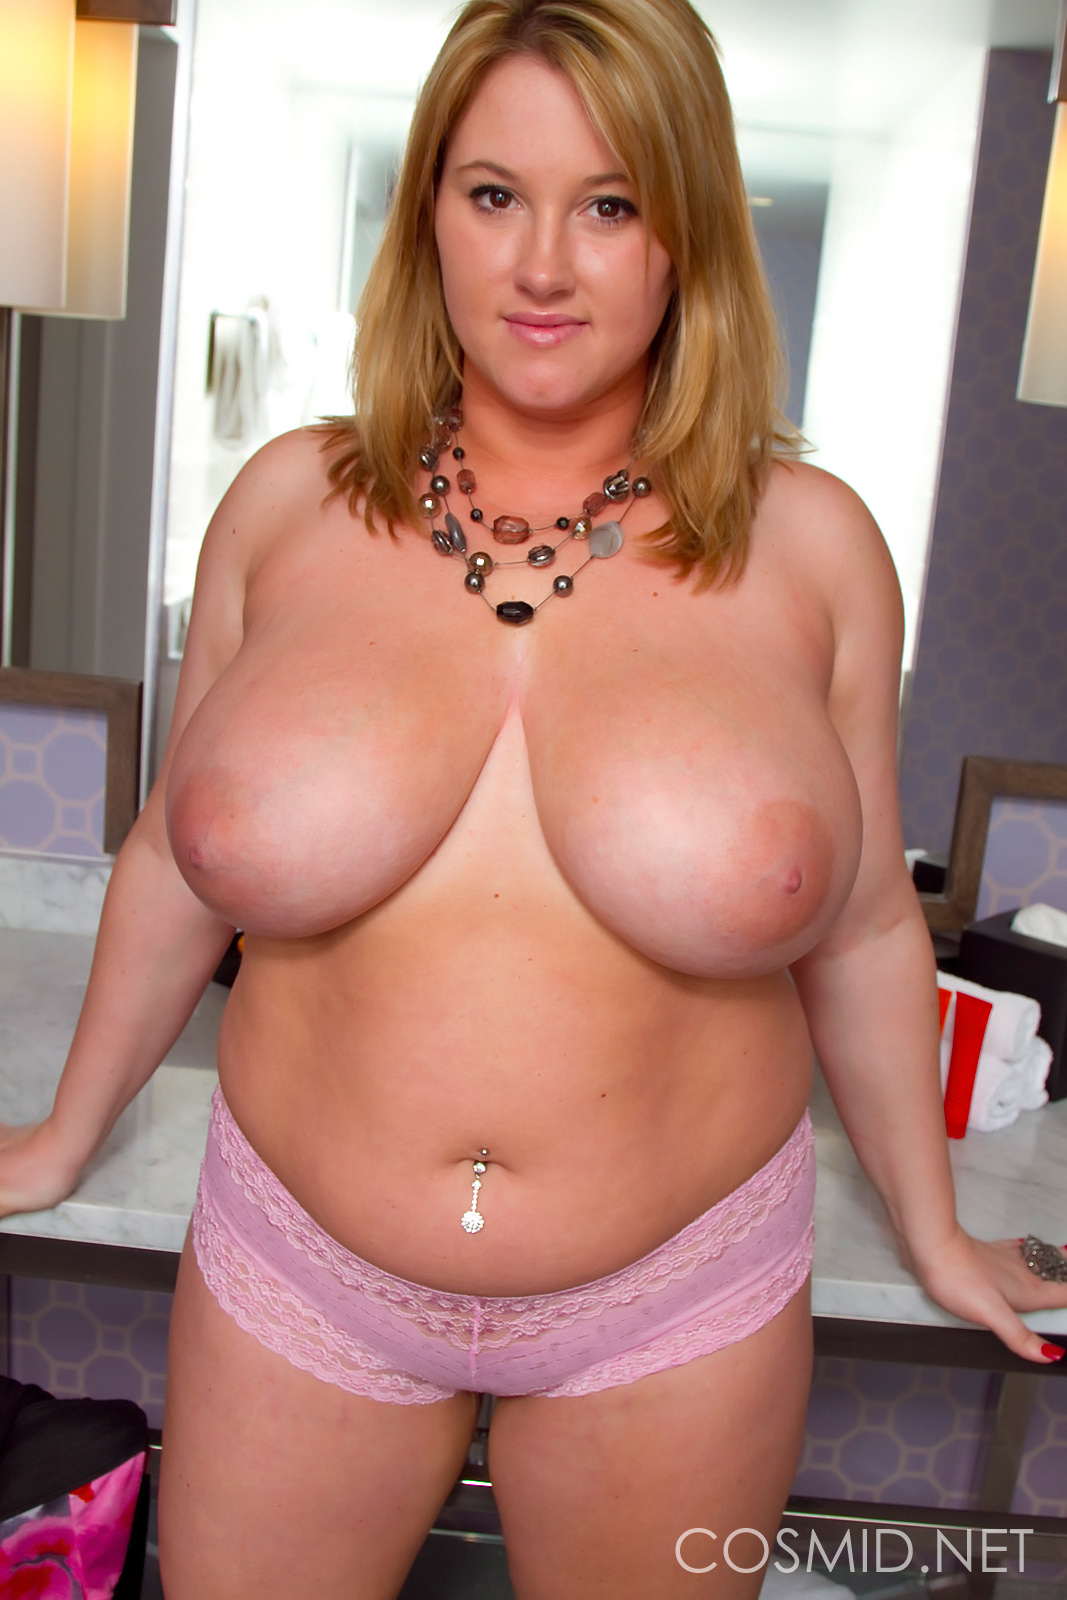 Brooke belle huge boobs blonde on stocking want a rough 2